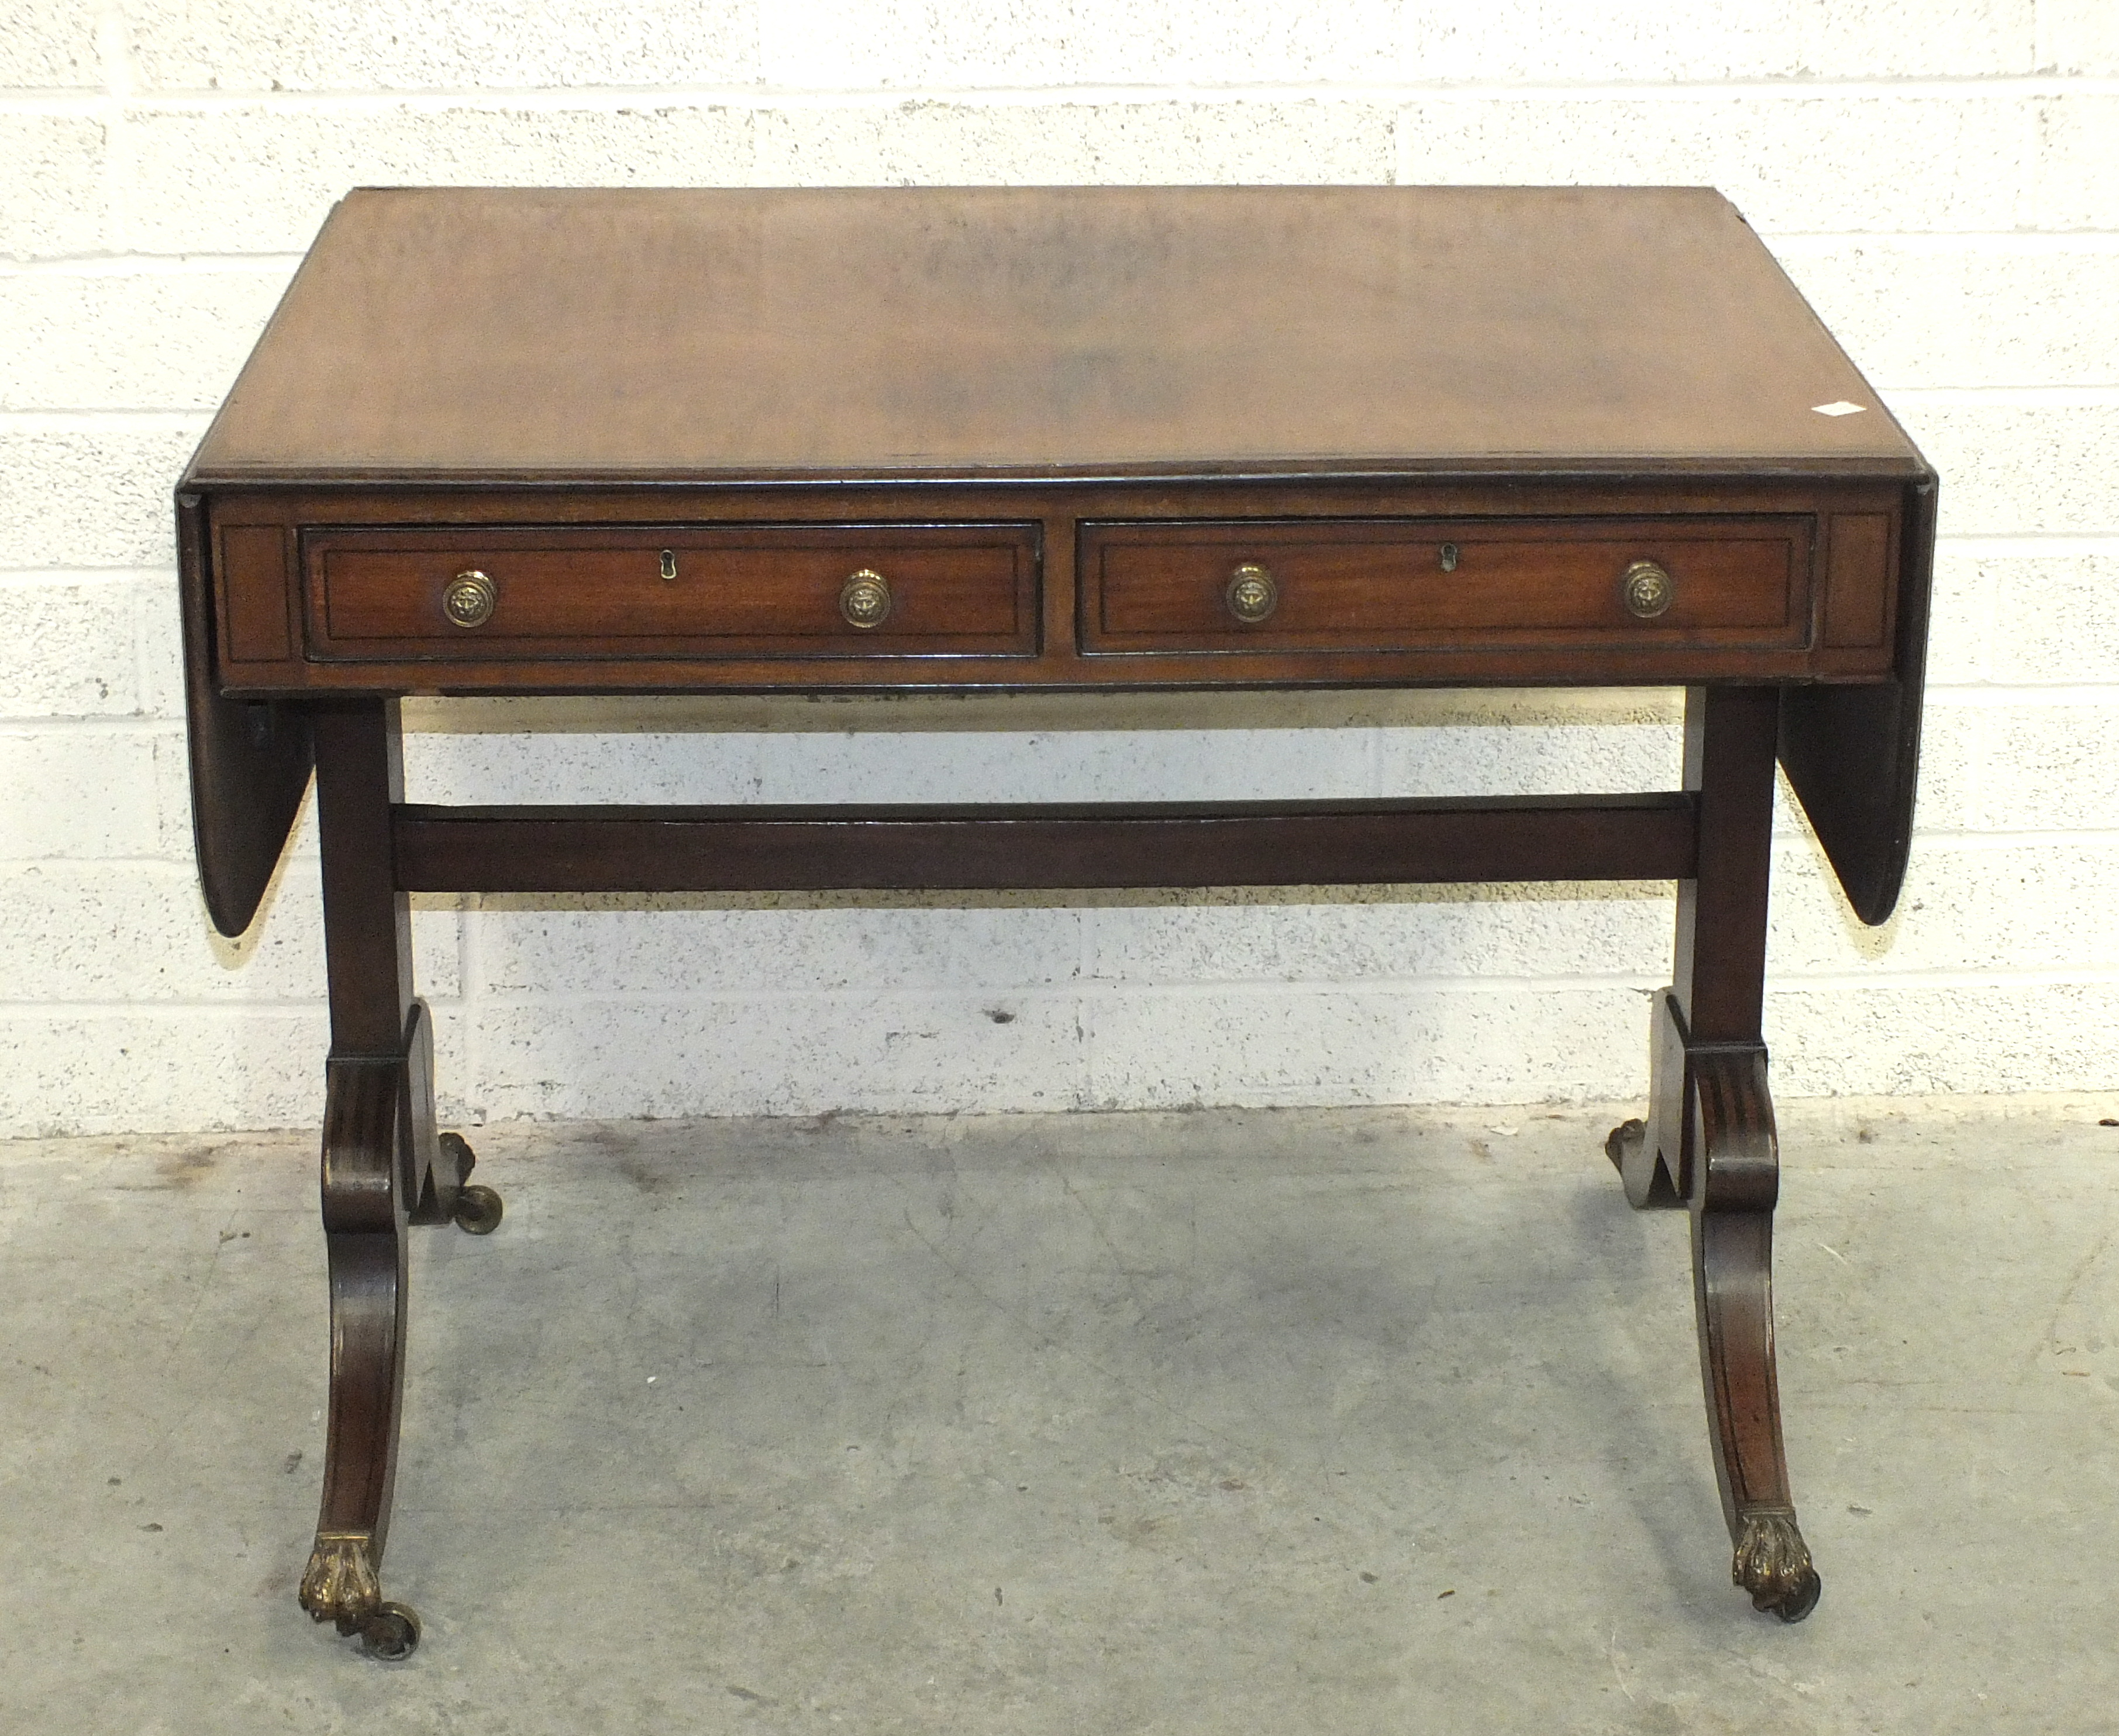 Lot 88 - A Regency ebony-strung sofa table, the rectangular top with two drop leaves, above two cockbeaded